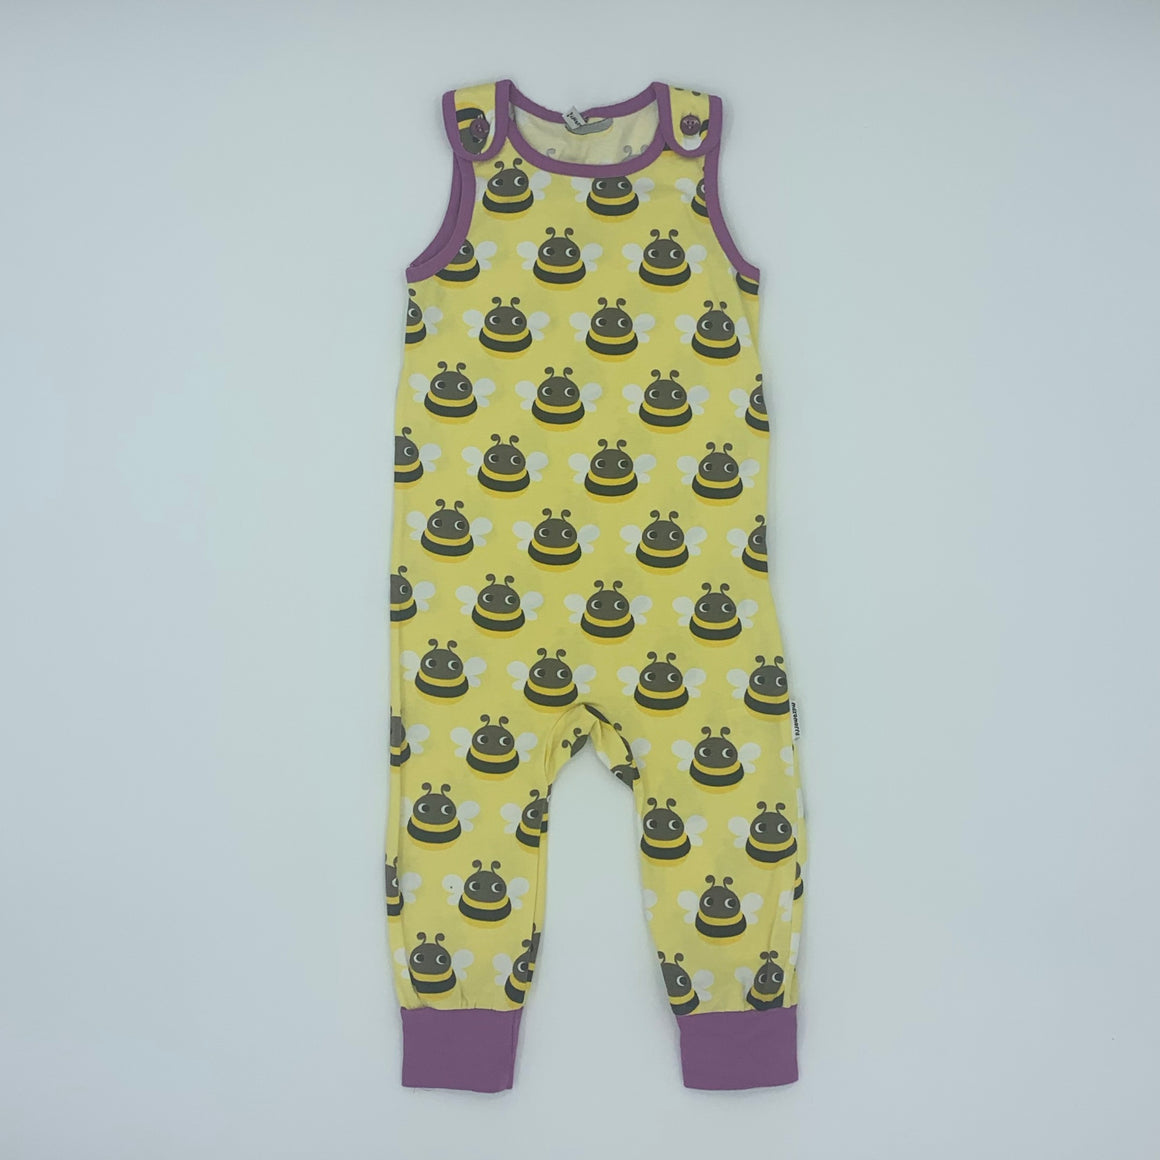 Never Worn Maxomorra bee romper dungarees size 18-24 months